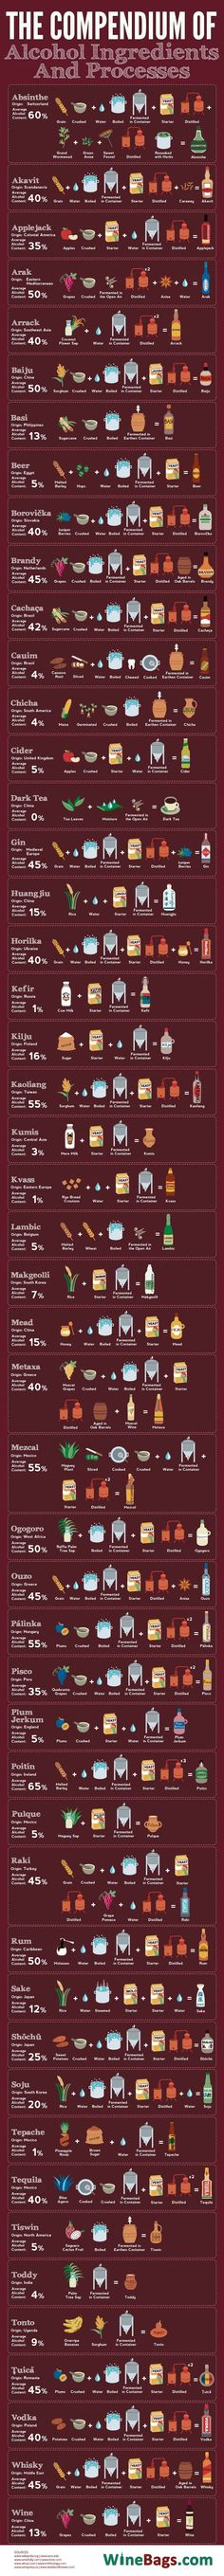 The Compendium Of Alcohol Ingredients And Processes - How to Home-Brew 49 Types of Alcohol